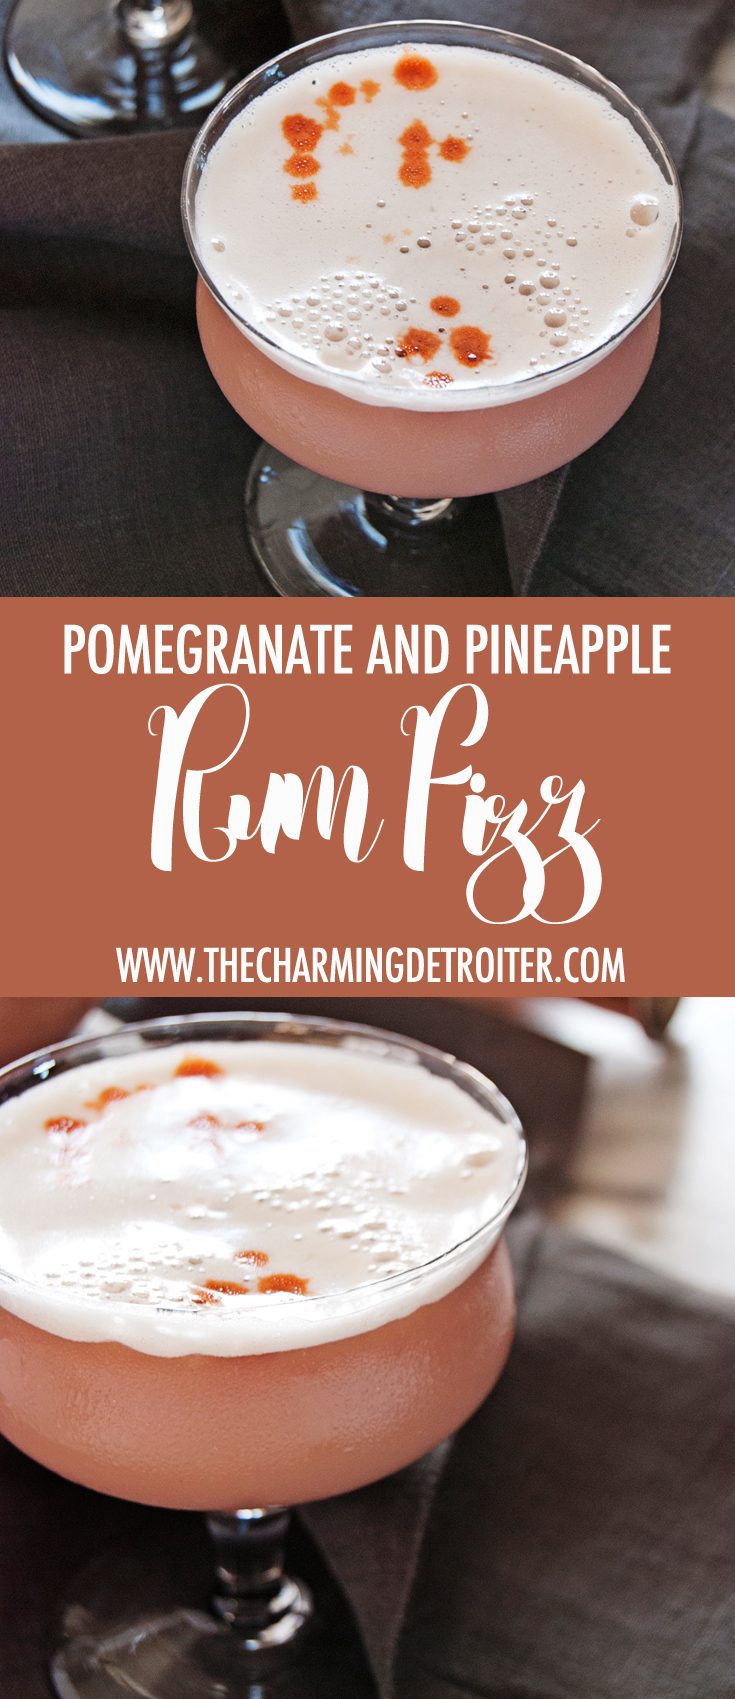 These tasty rum sour cocktails feature delicious pineapple juice and pomegranate juice and are finished with Angostura bitters.